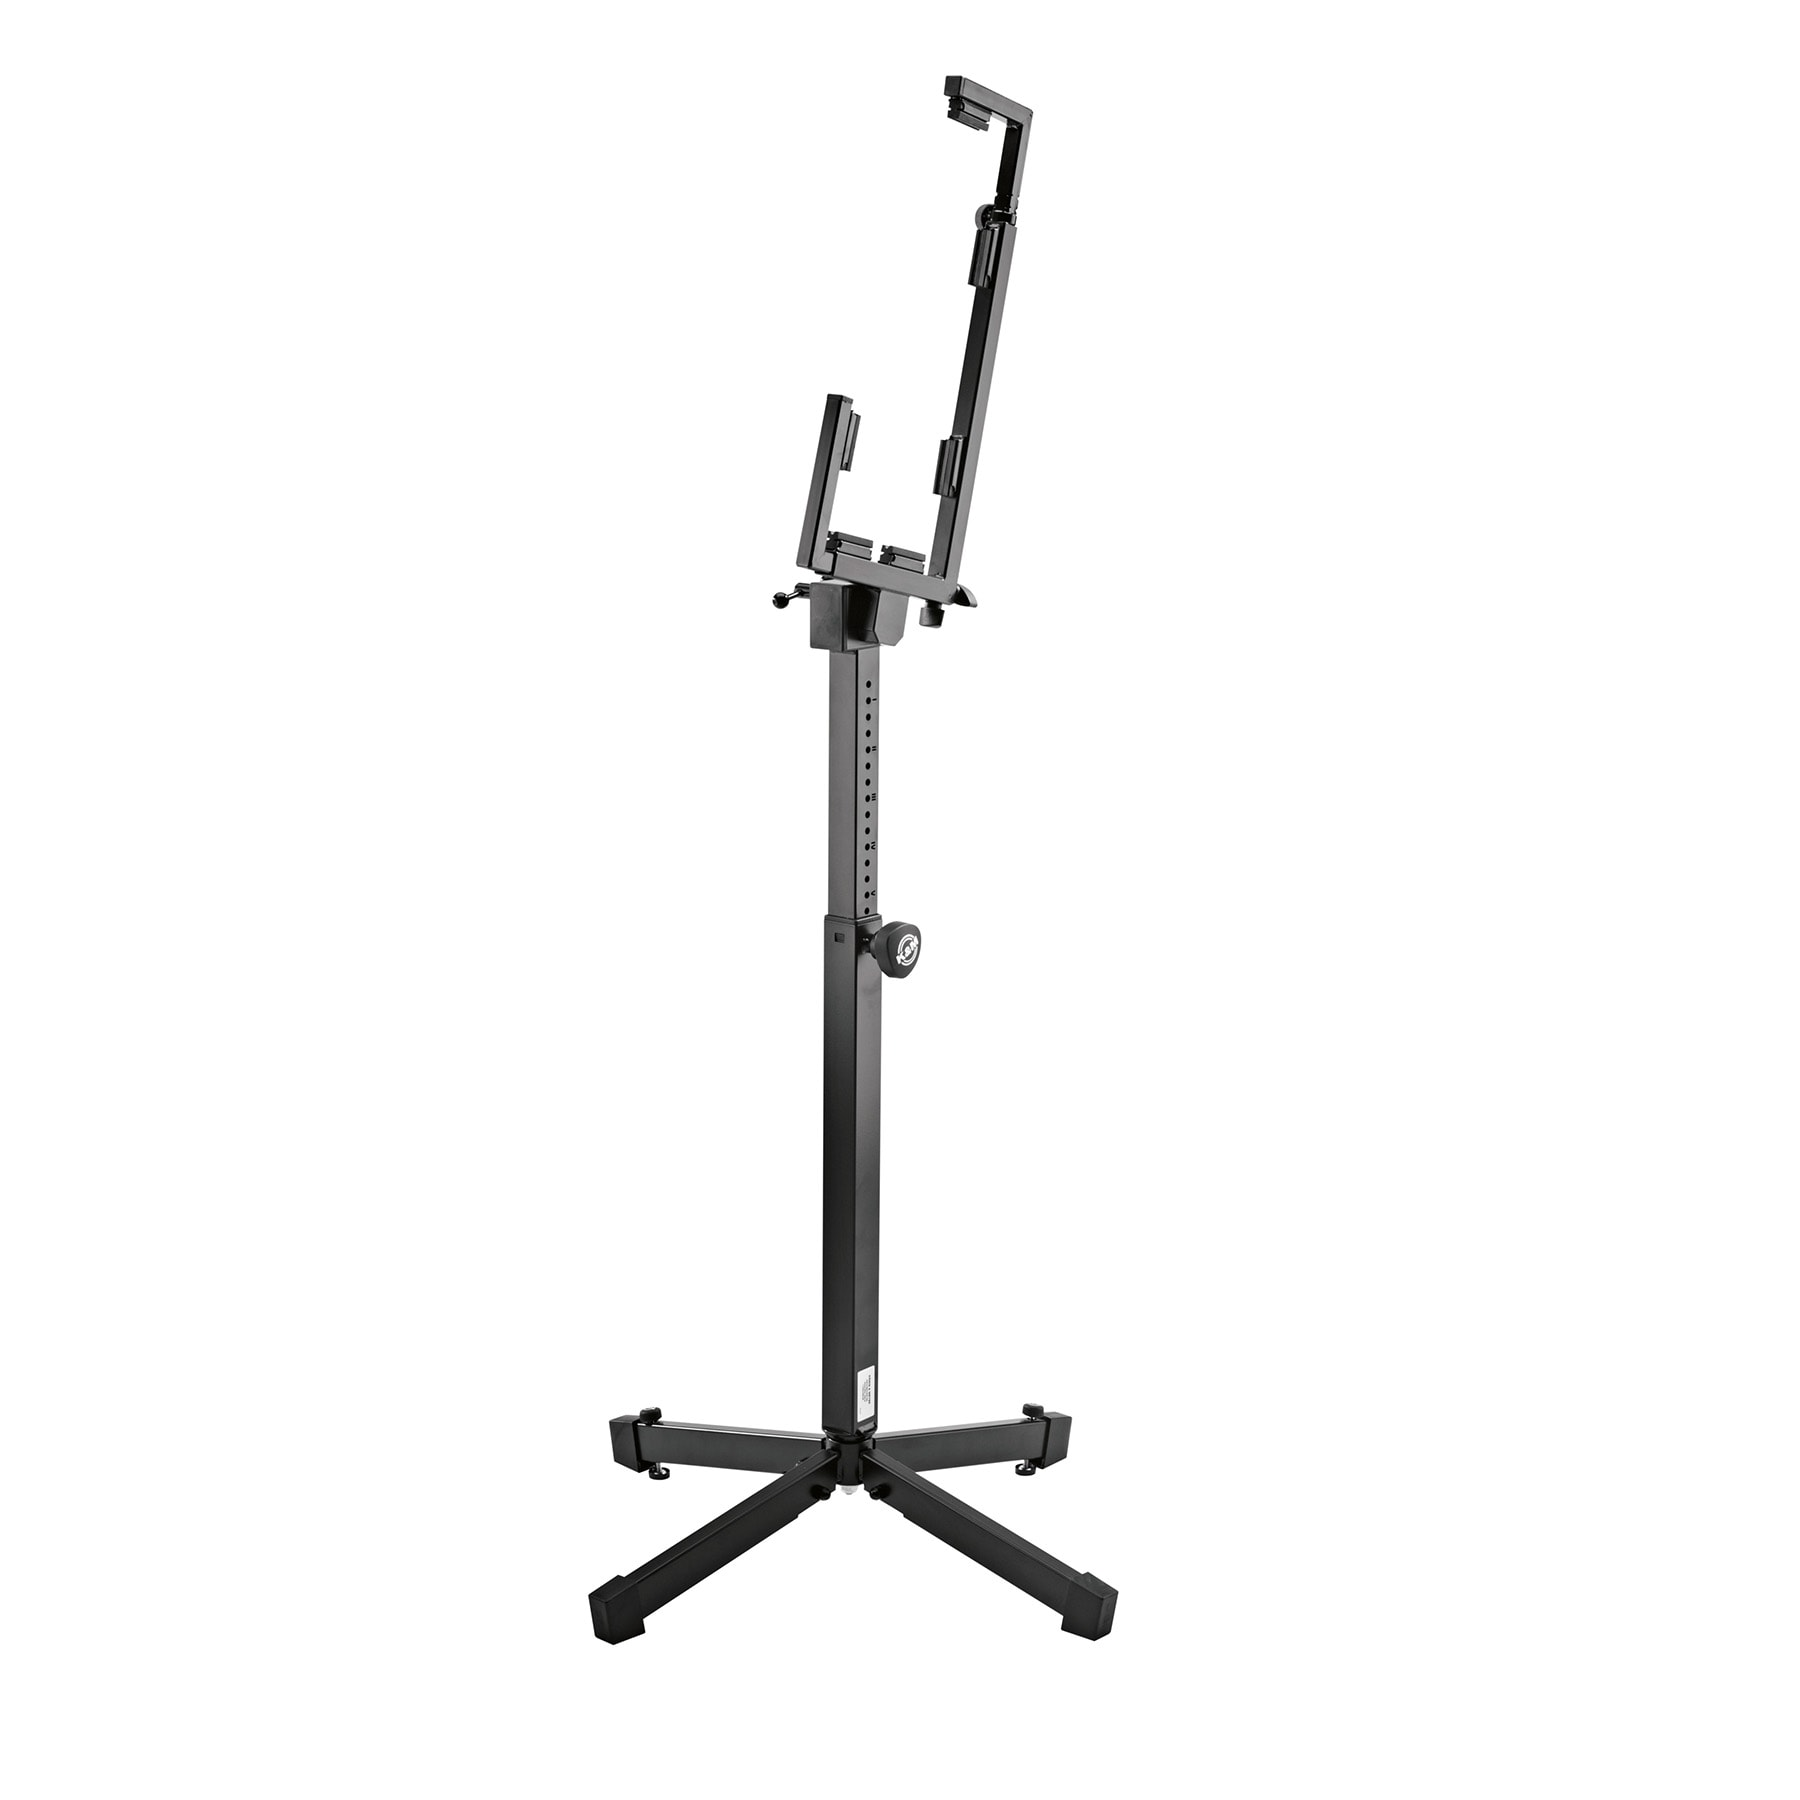 KM174 - Accordion stand